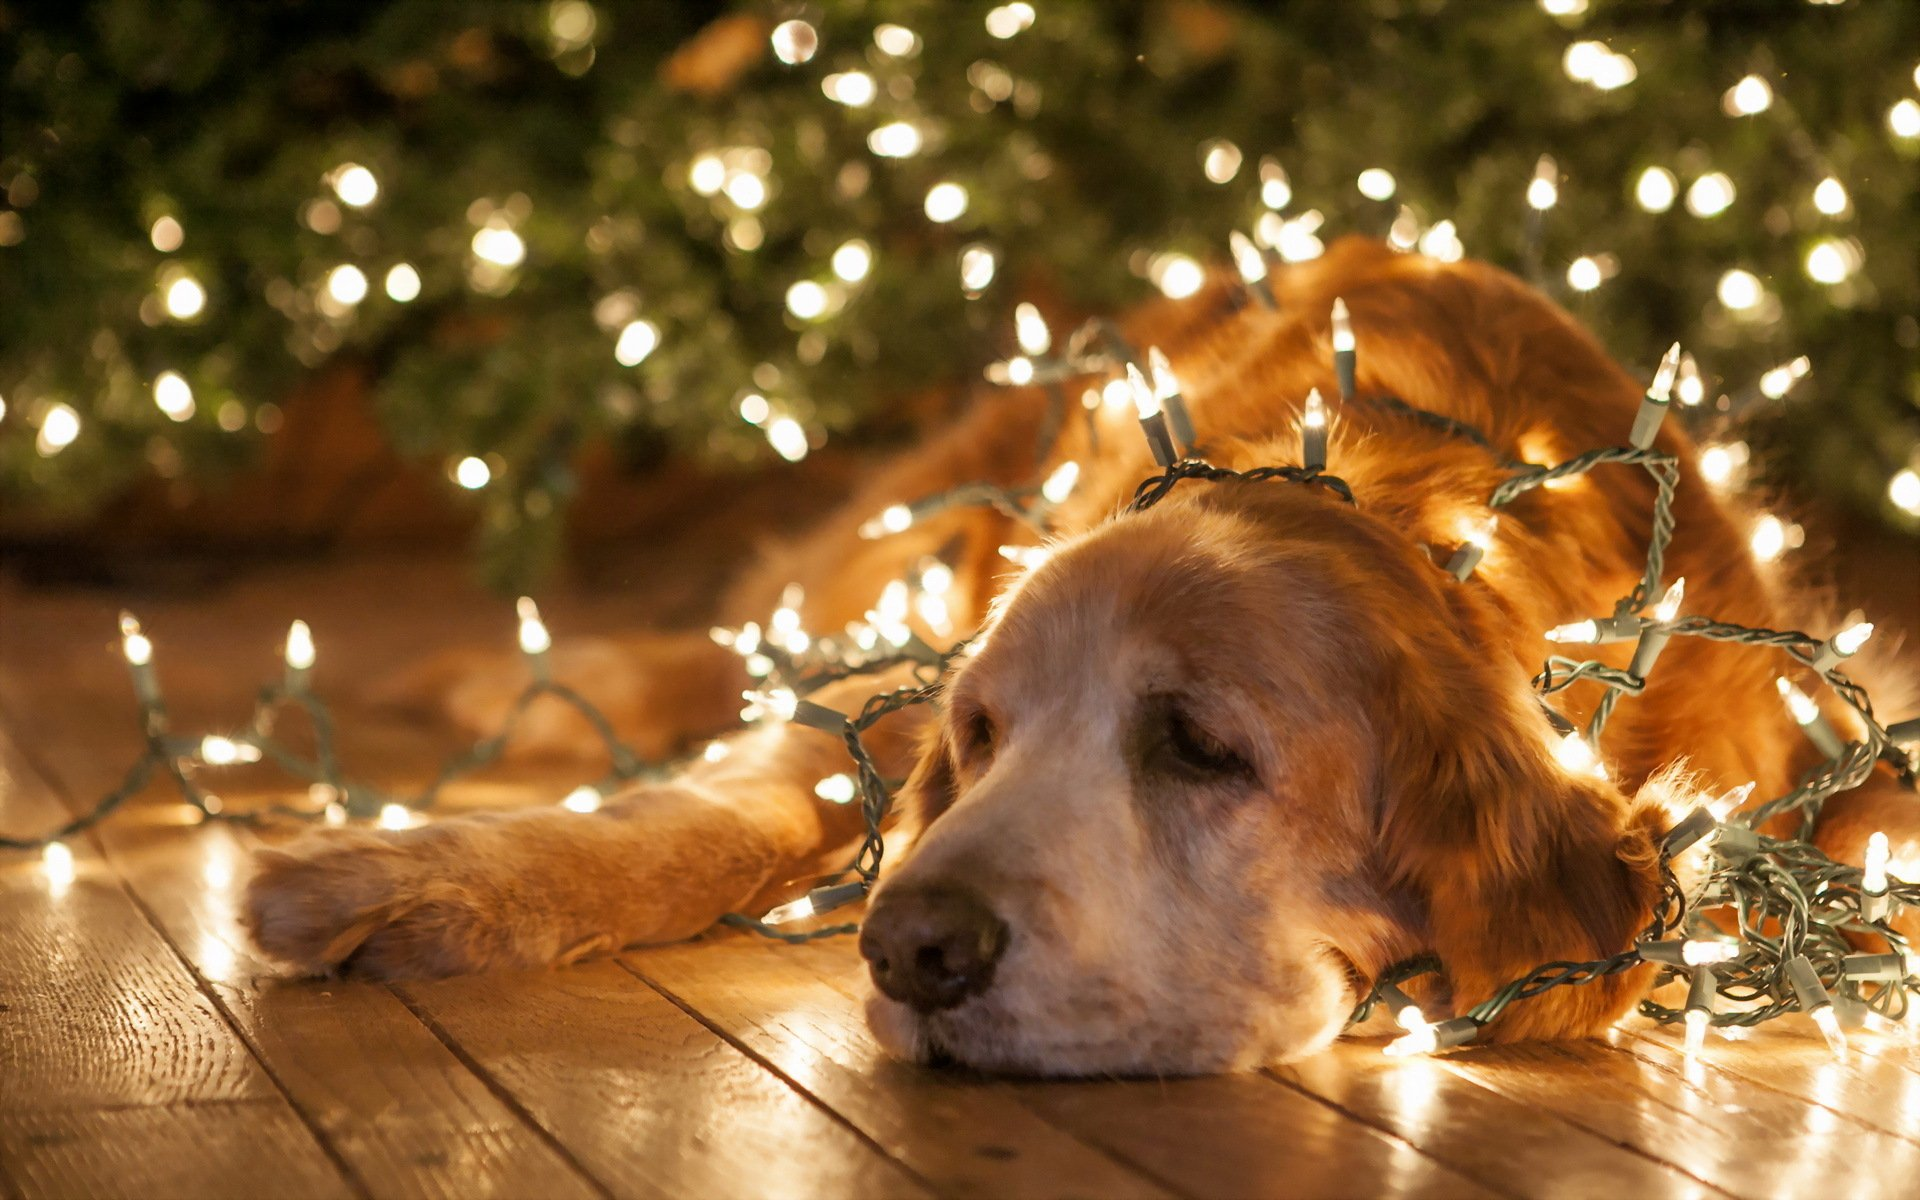 christmas new year lights bright animals dogs humor funny wallpaper 1920x1200